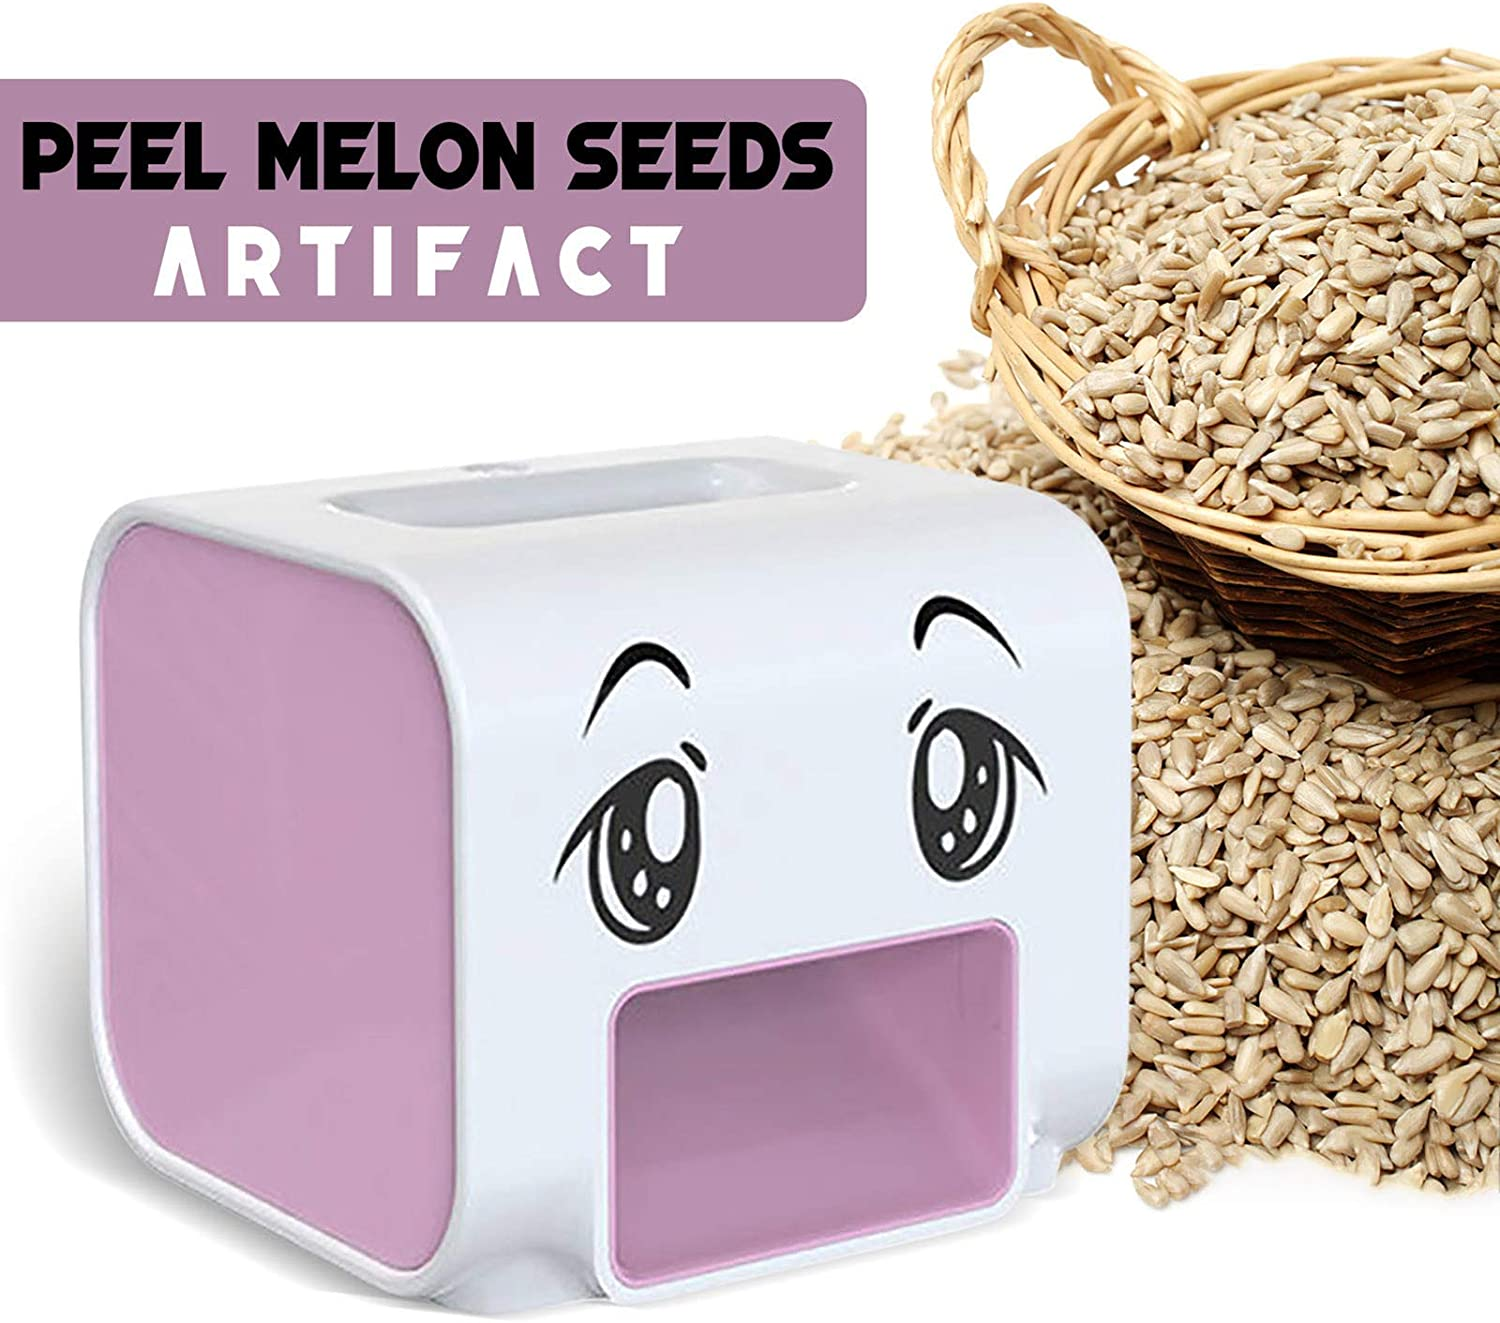 Melon Seed Opener Melon Seed Sheller Opening Tools for Home Automatic Melon Seed Peeling Machine Sunflower Seeds Shelling Machine White Electric Melon Peeler Artifact Melon Seed Cracker